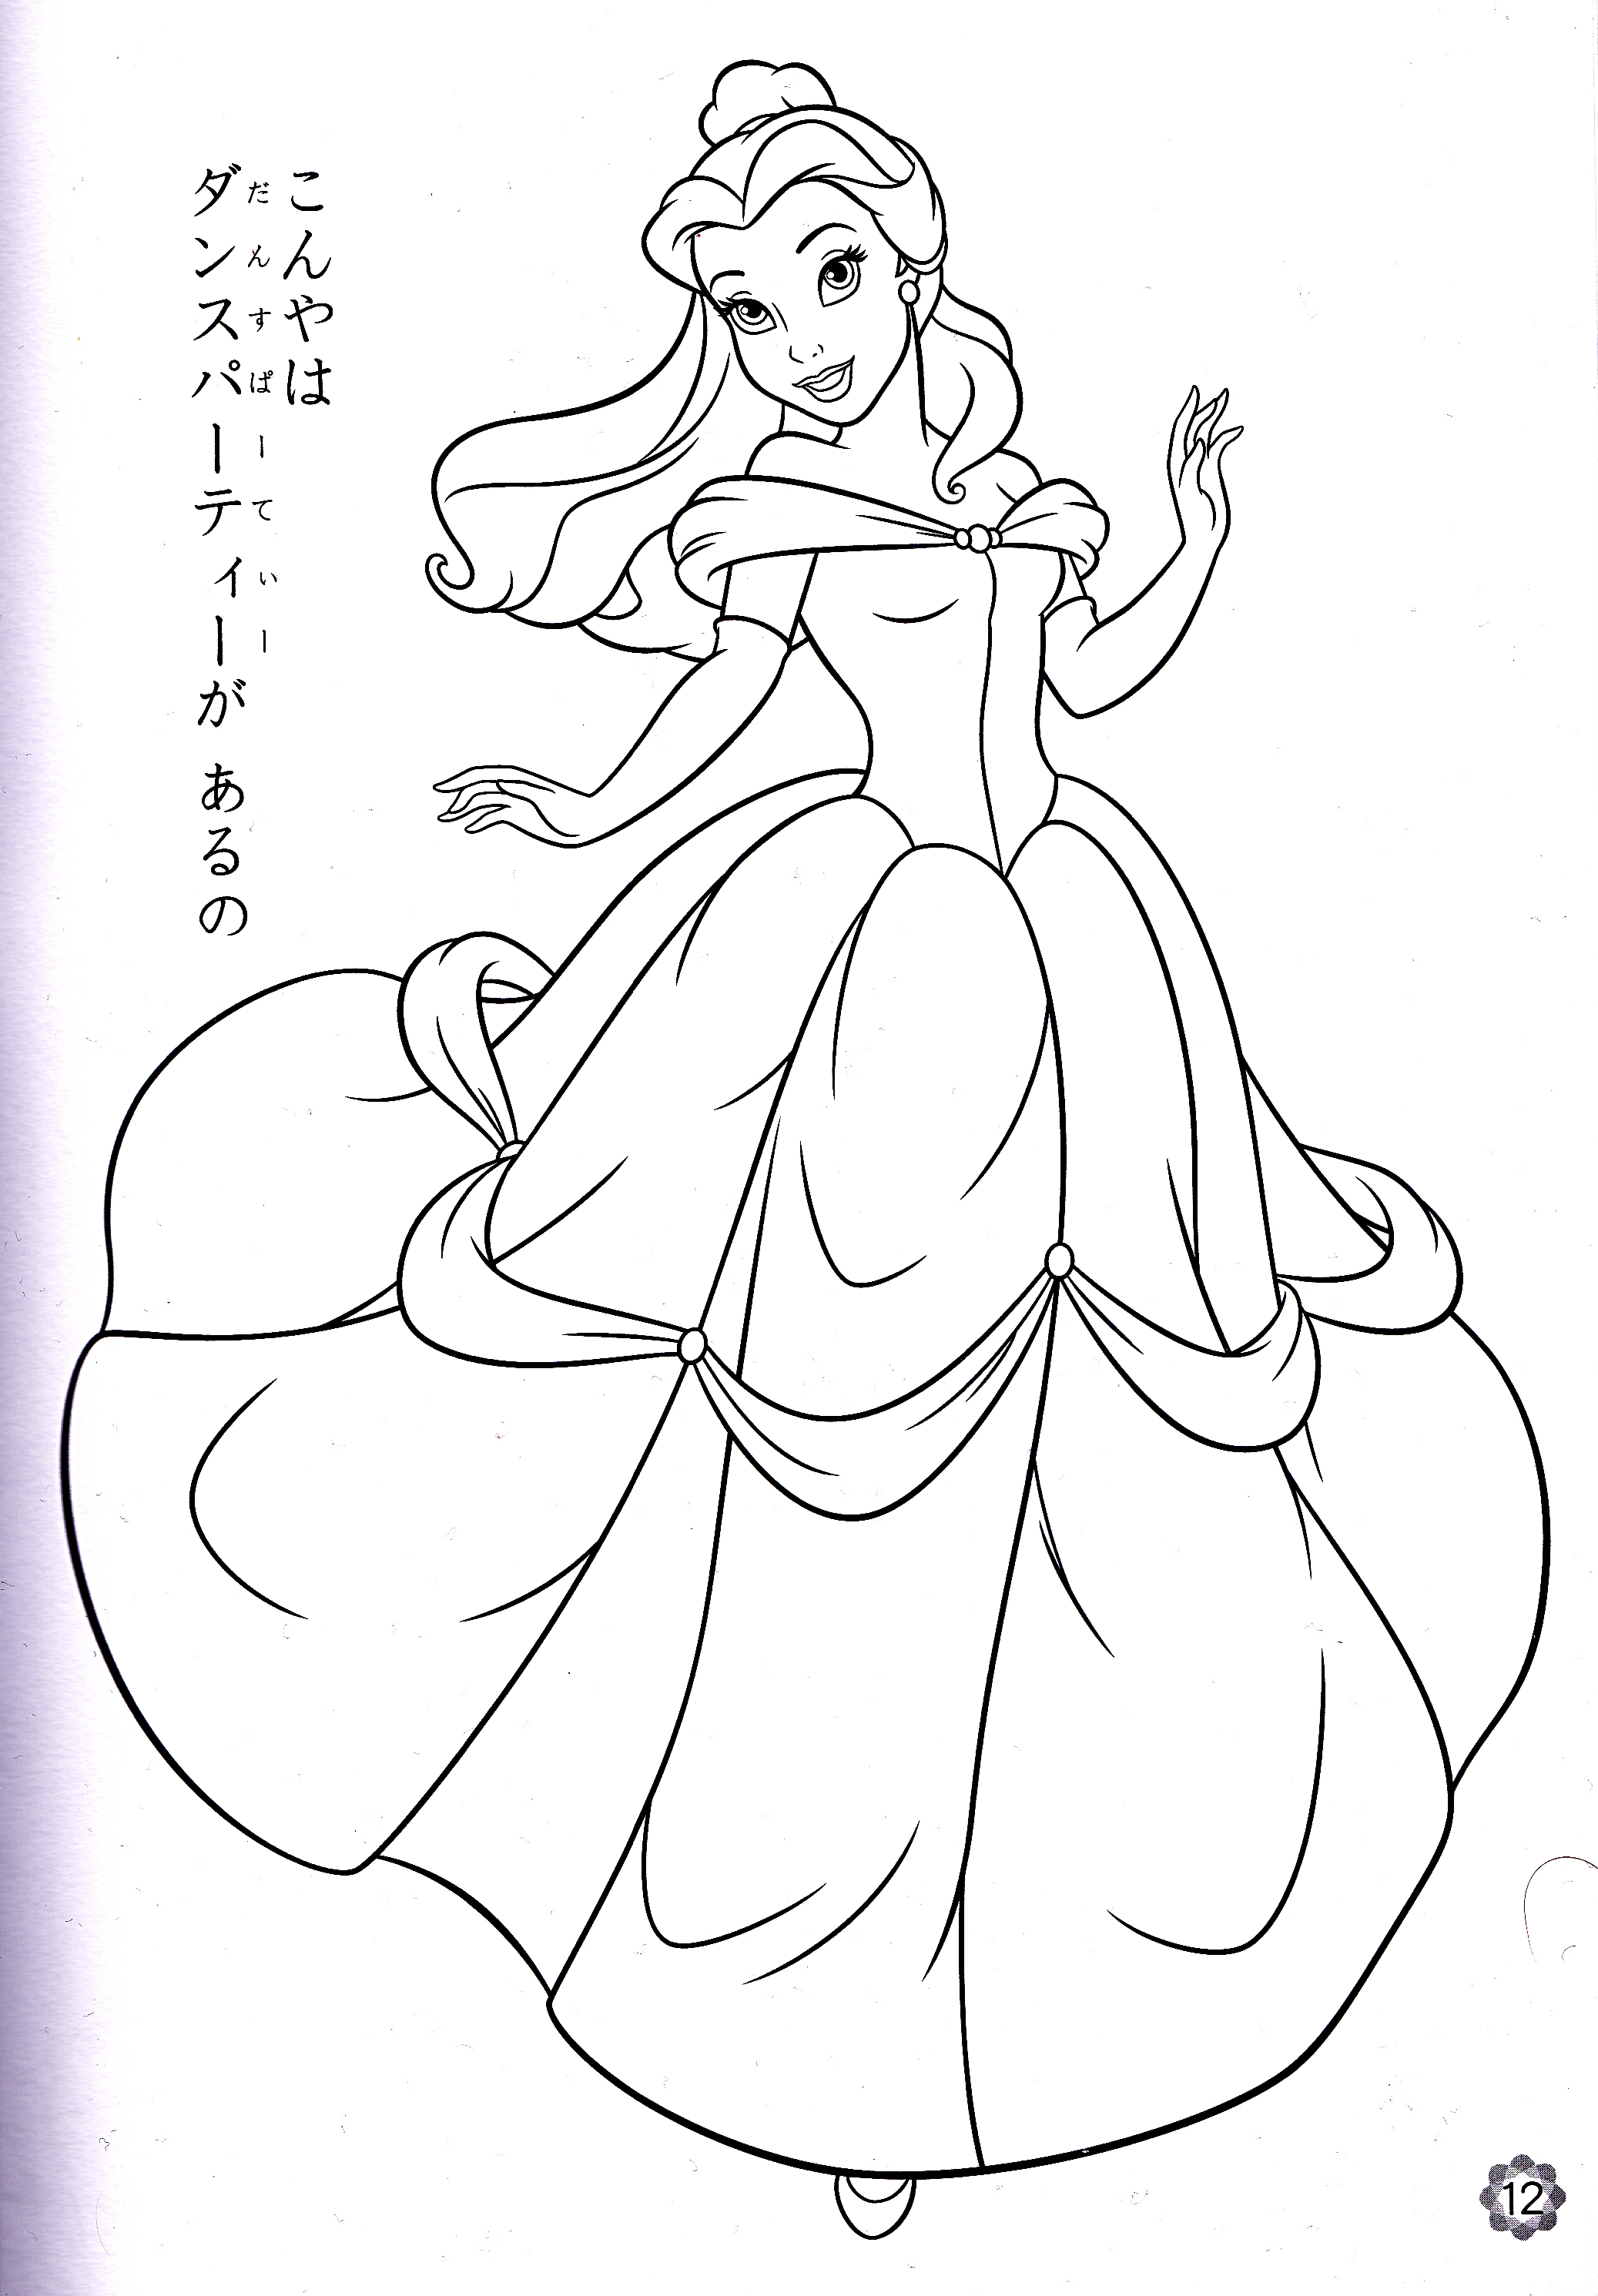 disney princess characters coloring pages - photo#9